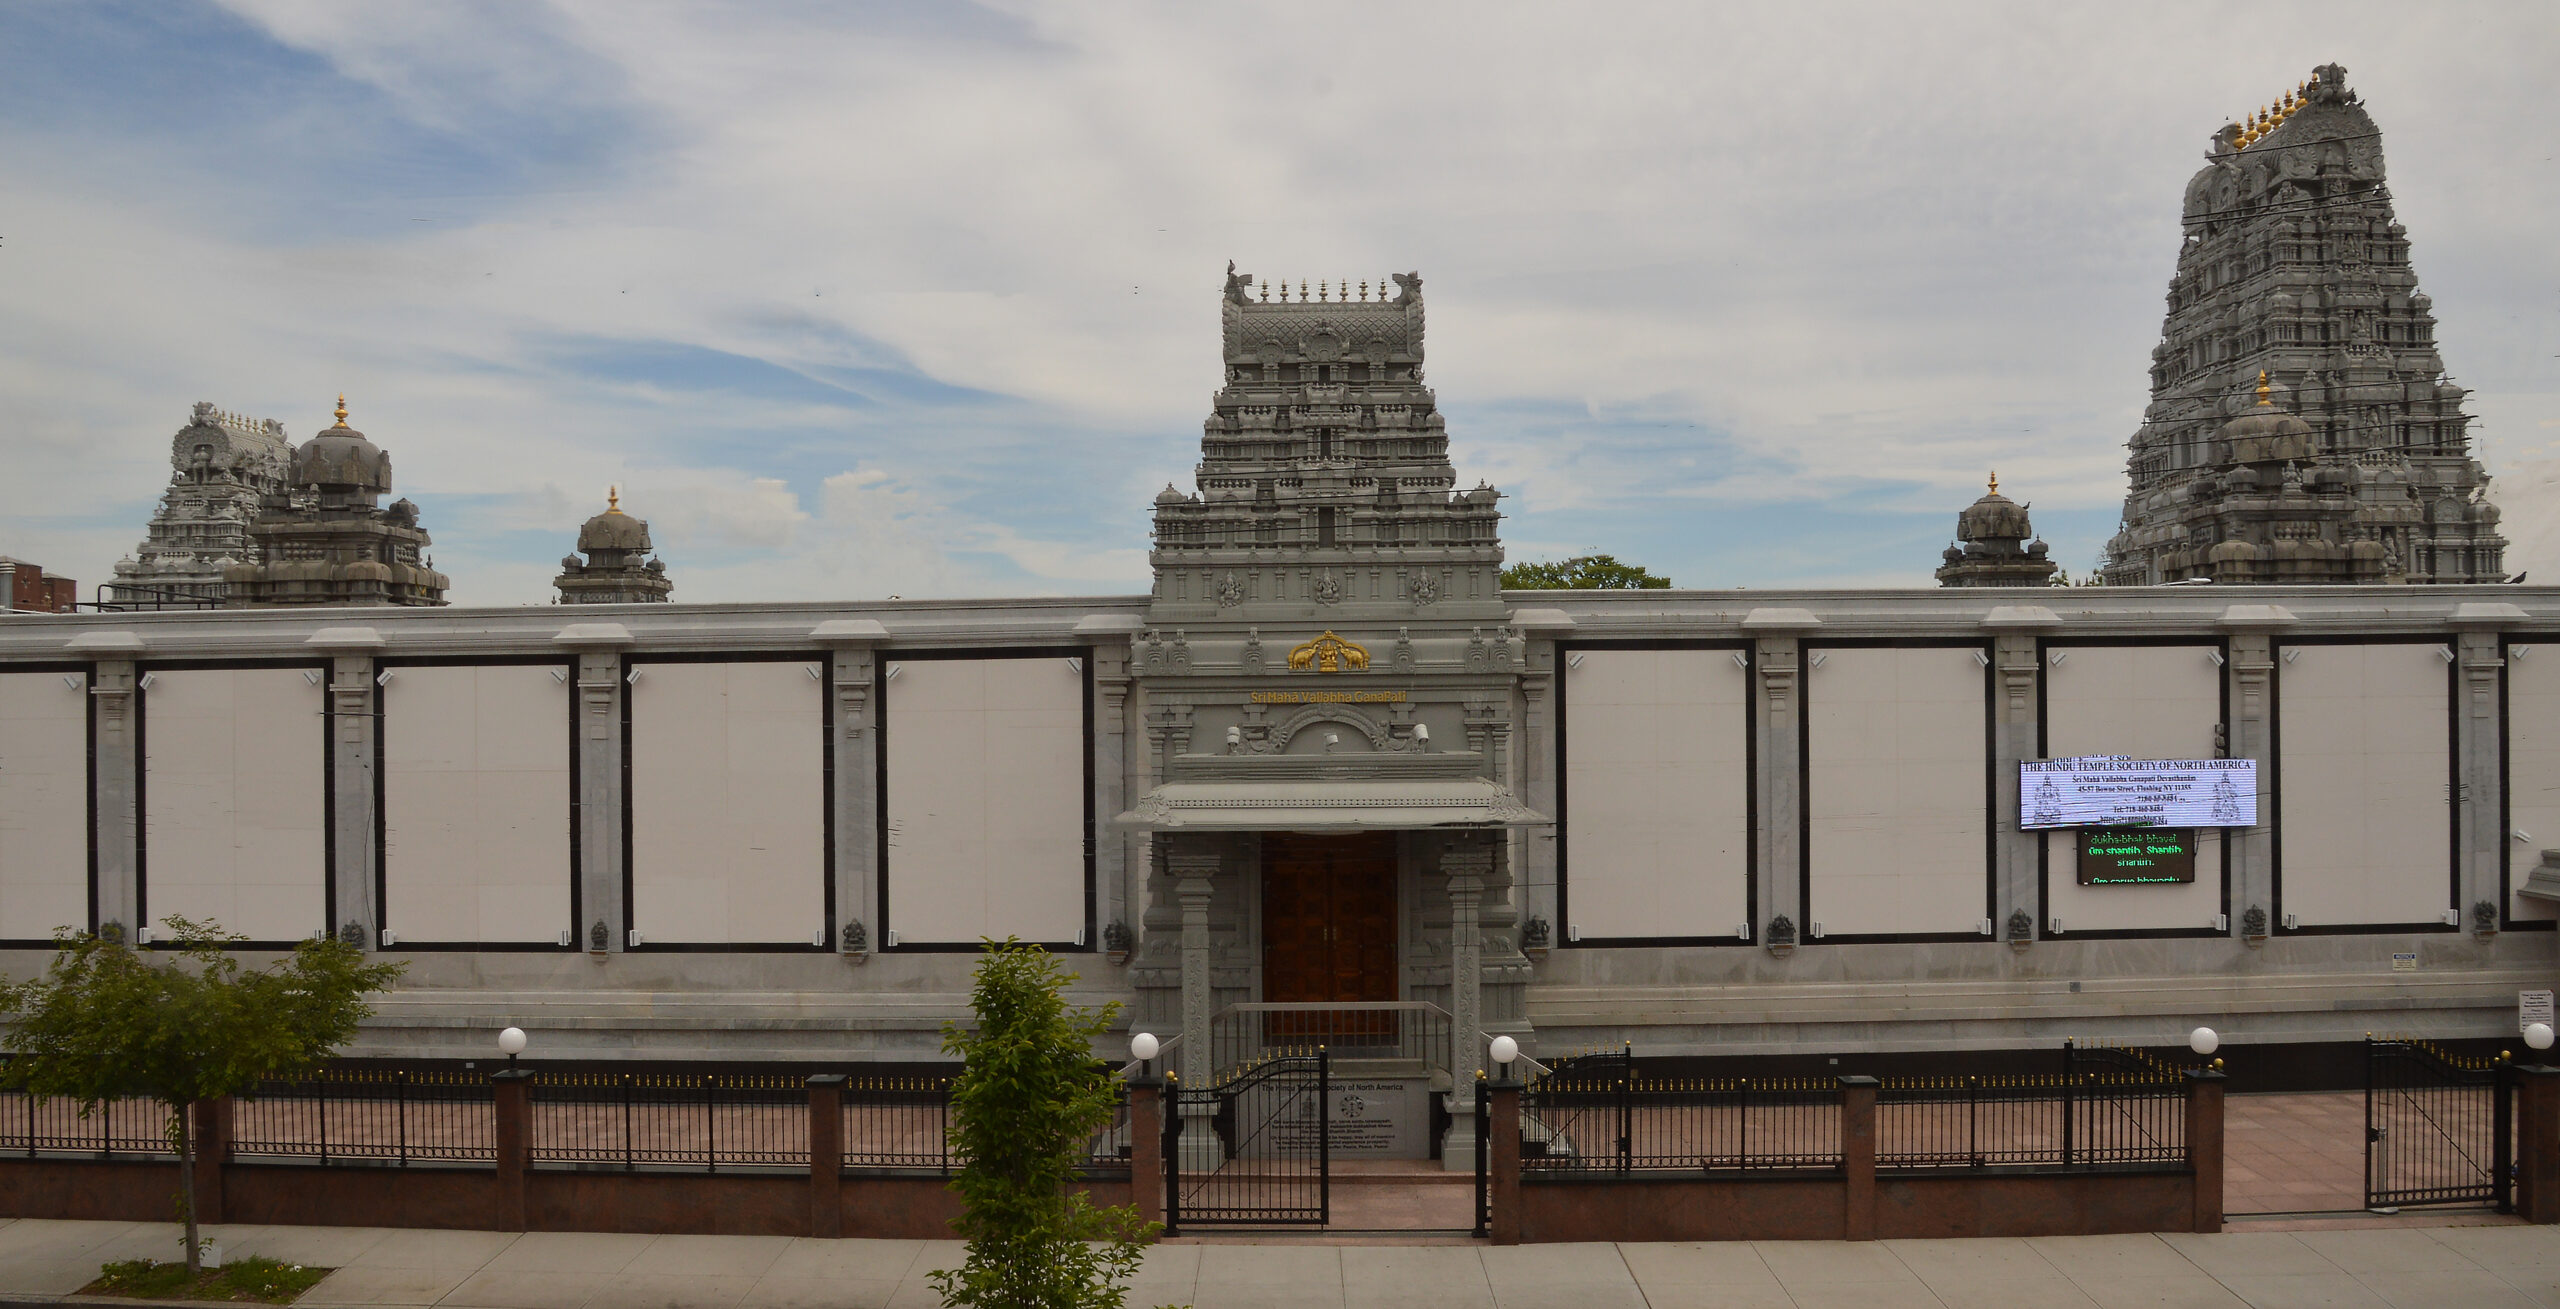 Exterior view of the Temple